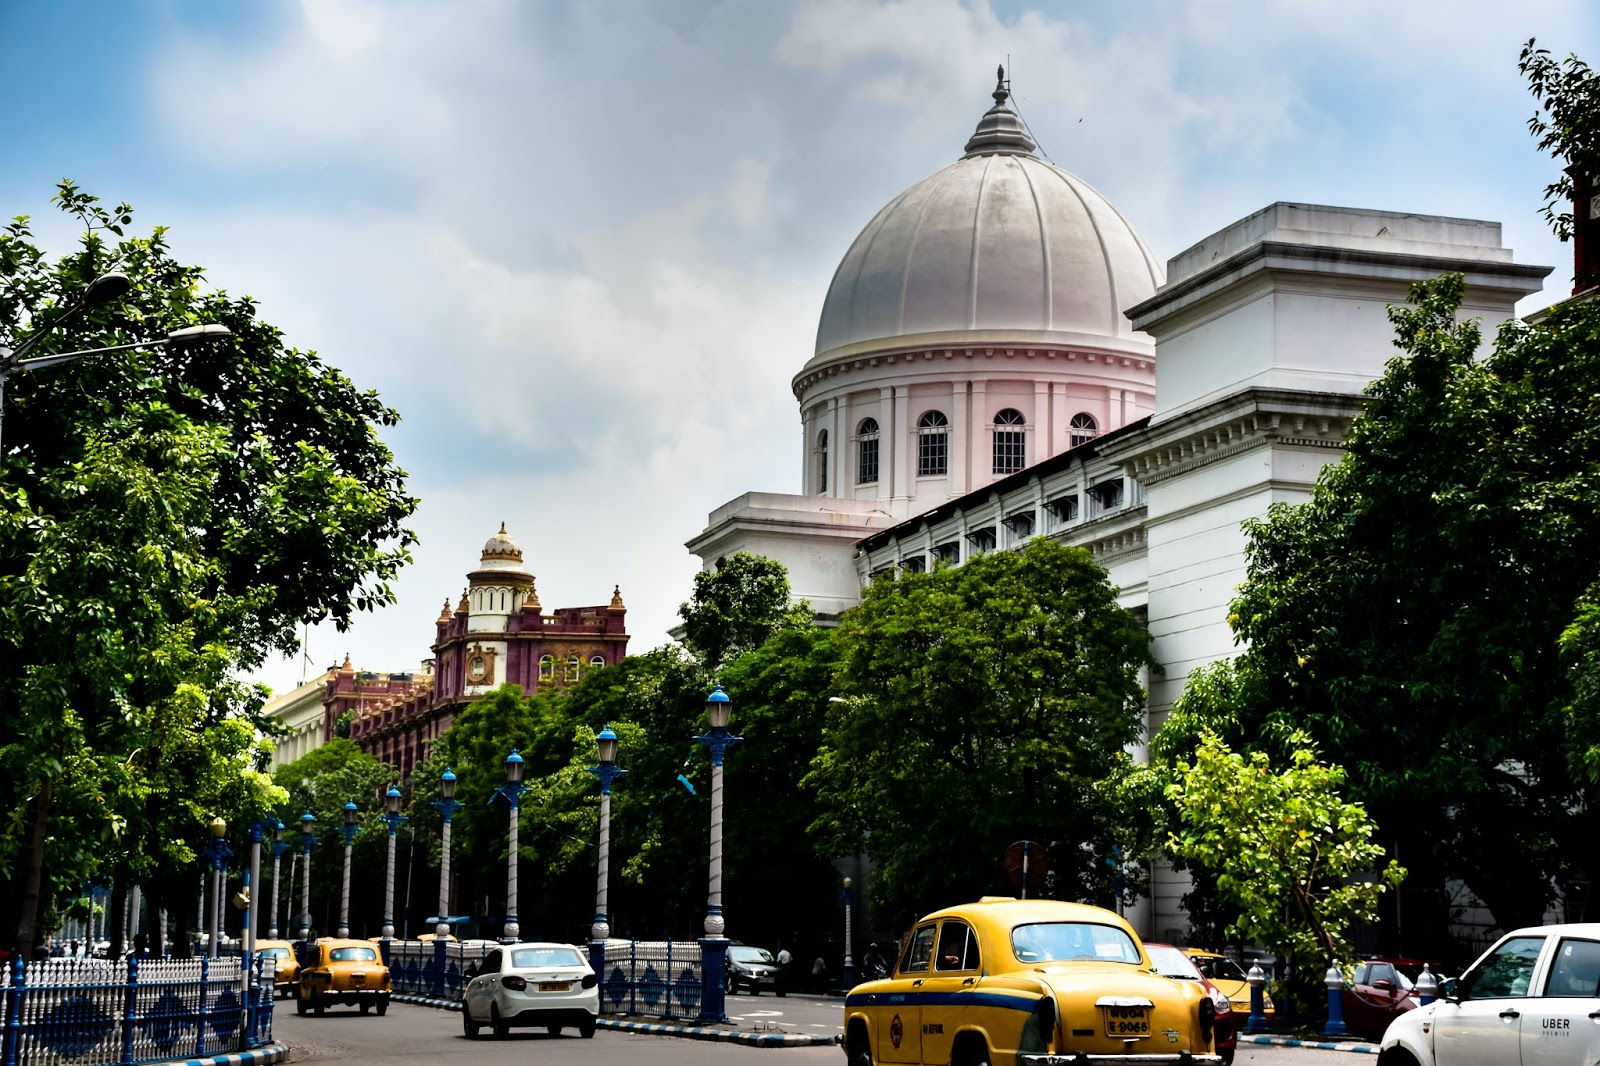 Dalhousie Square standing as the witness of the heritage of Colonial Kolkata @DoiBedouin